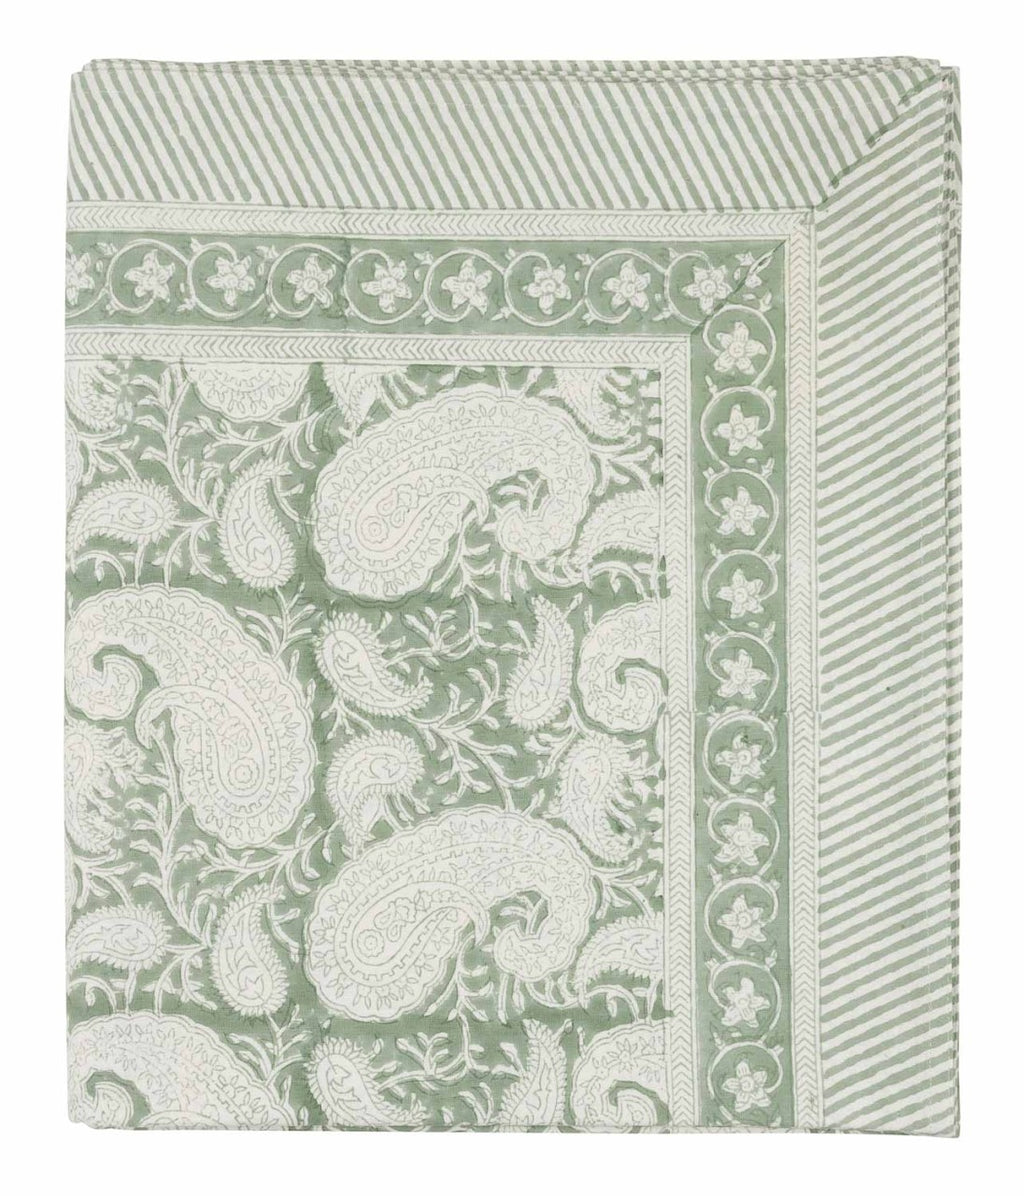 Tablecloth with a hand block printed Big Paisley pattern in Sea Foam